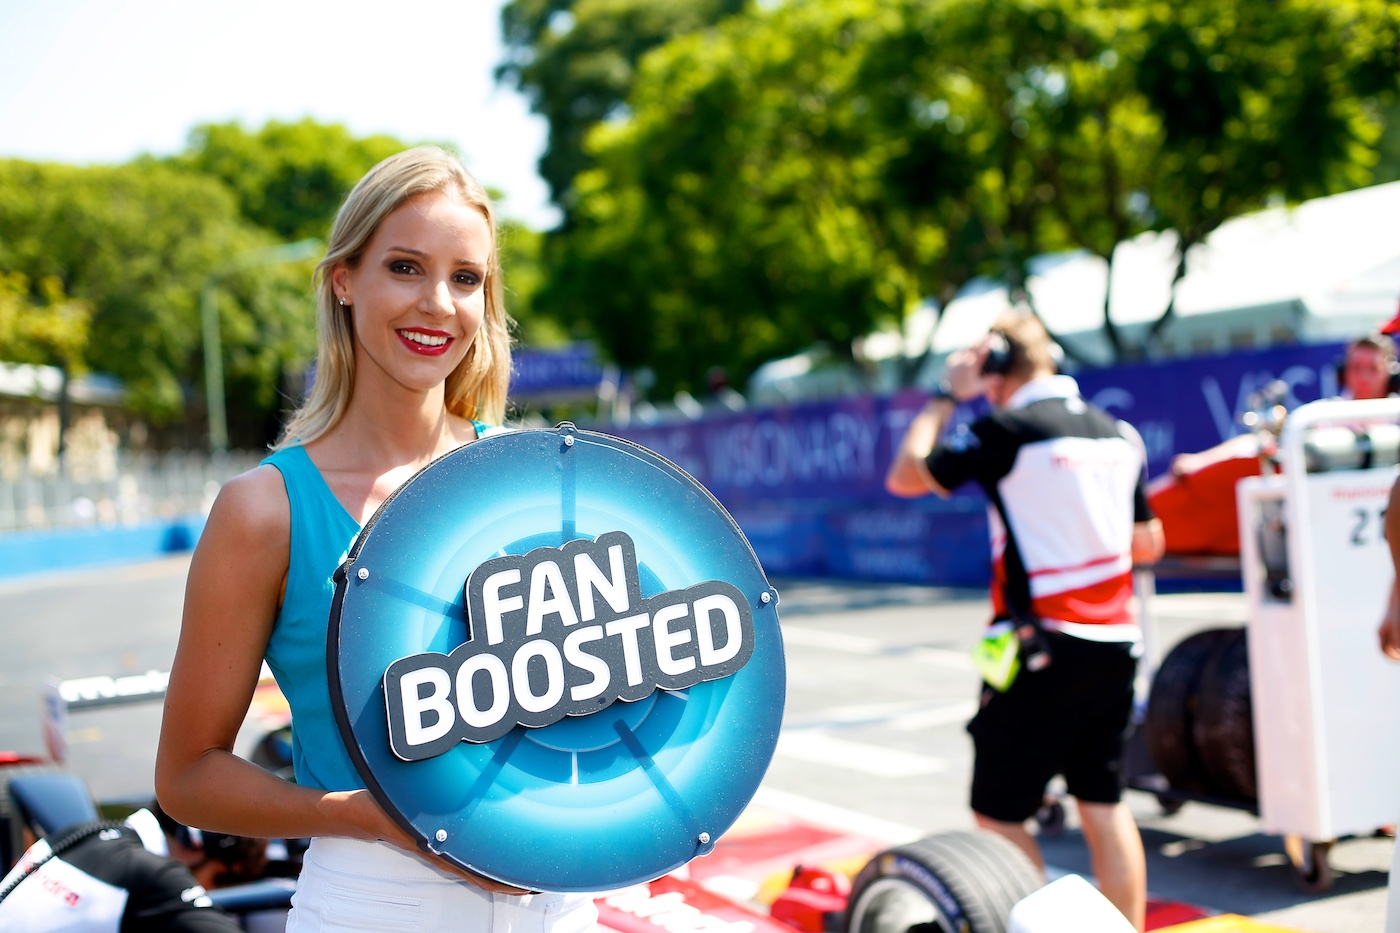 Fan boost to extend into races